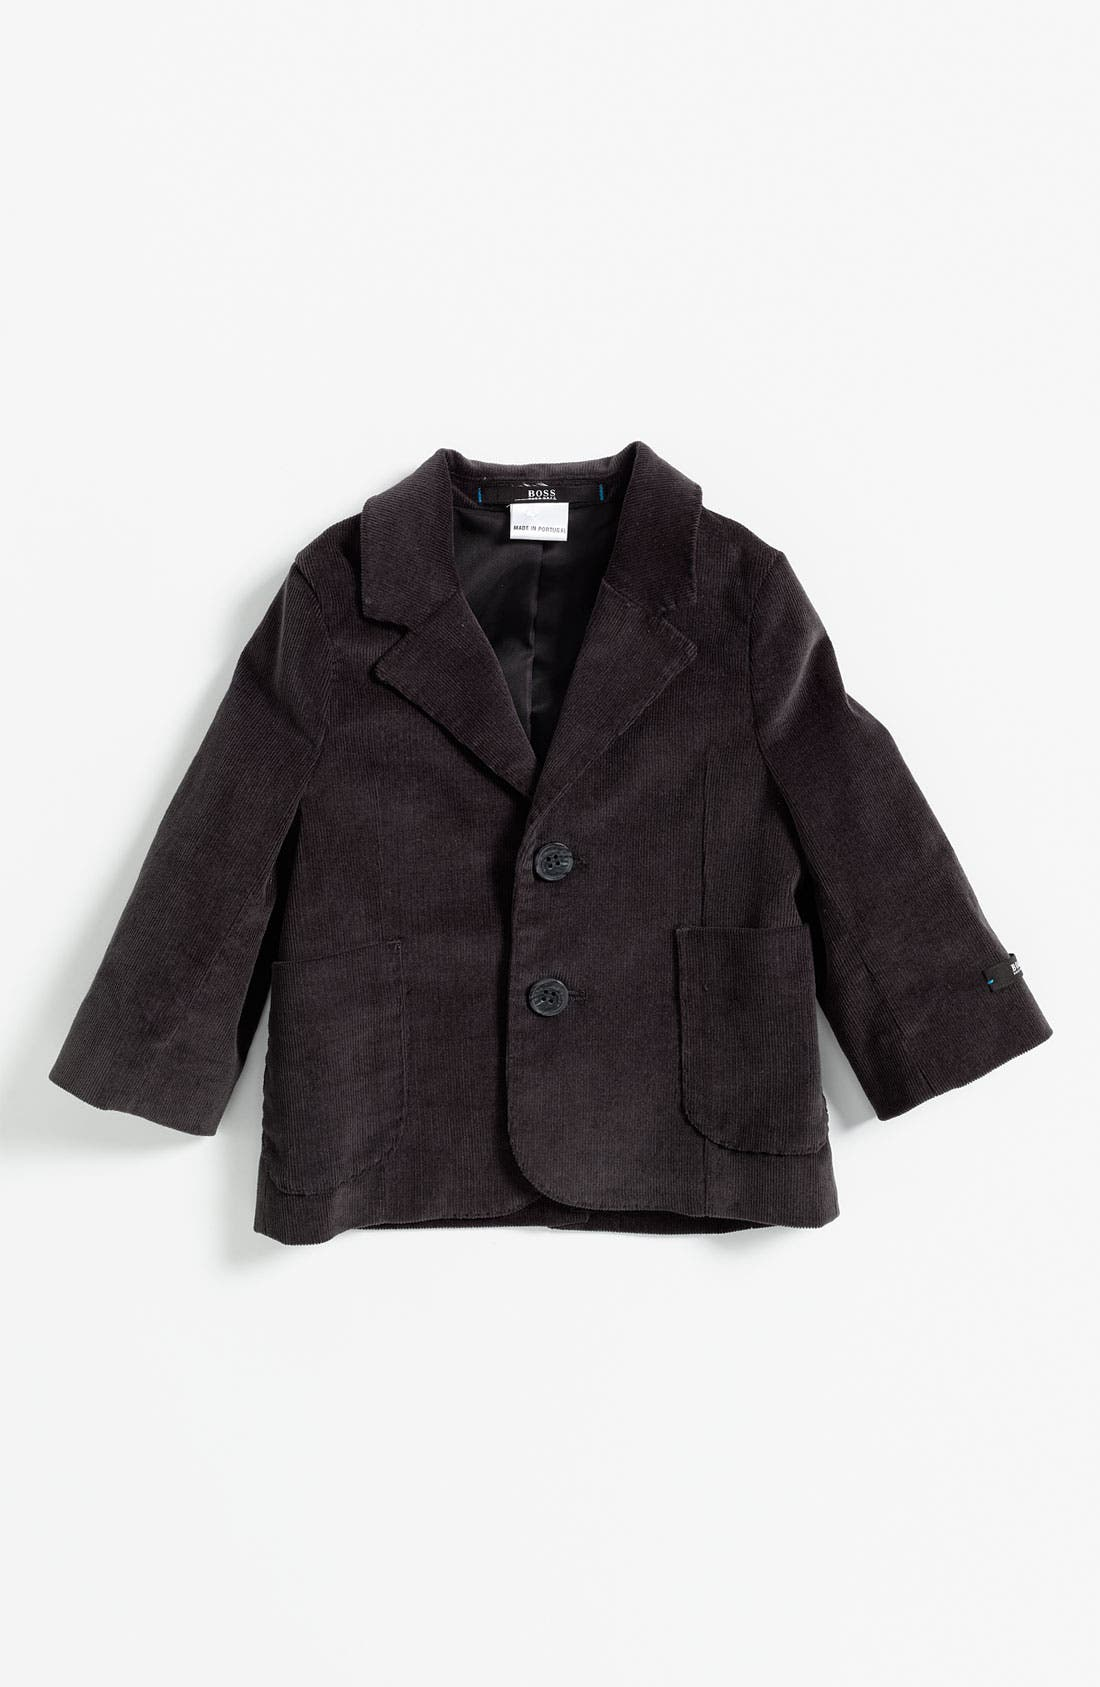 Alternate Image 1 Selected - BOSS Kidswear Velvet Jacket (Toddler)